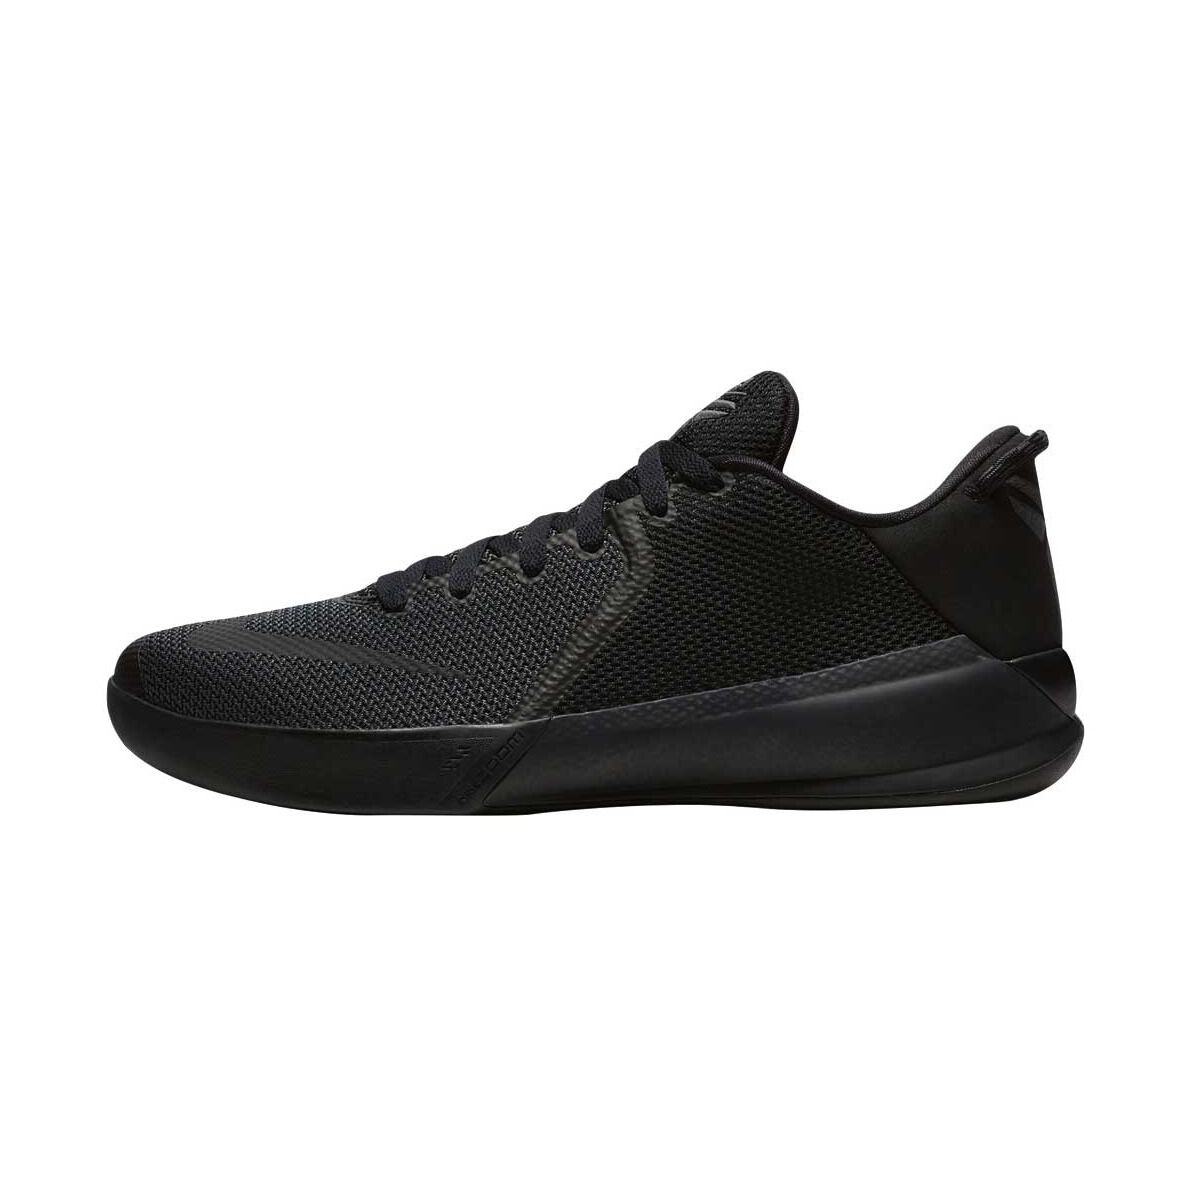 premium selection 5577d 66db9 ... canada nike zoom kobe venomenon 6 mens basketball shoes black us 8  black rebelhi a3c02 57e9e